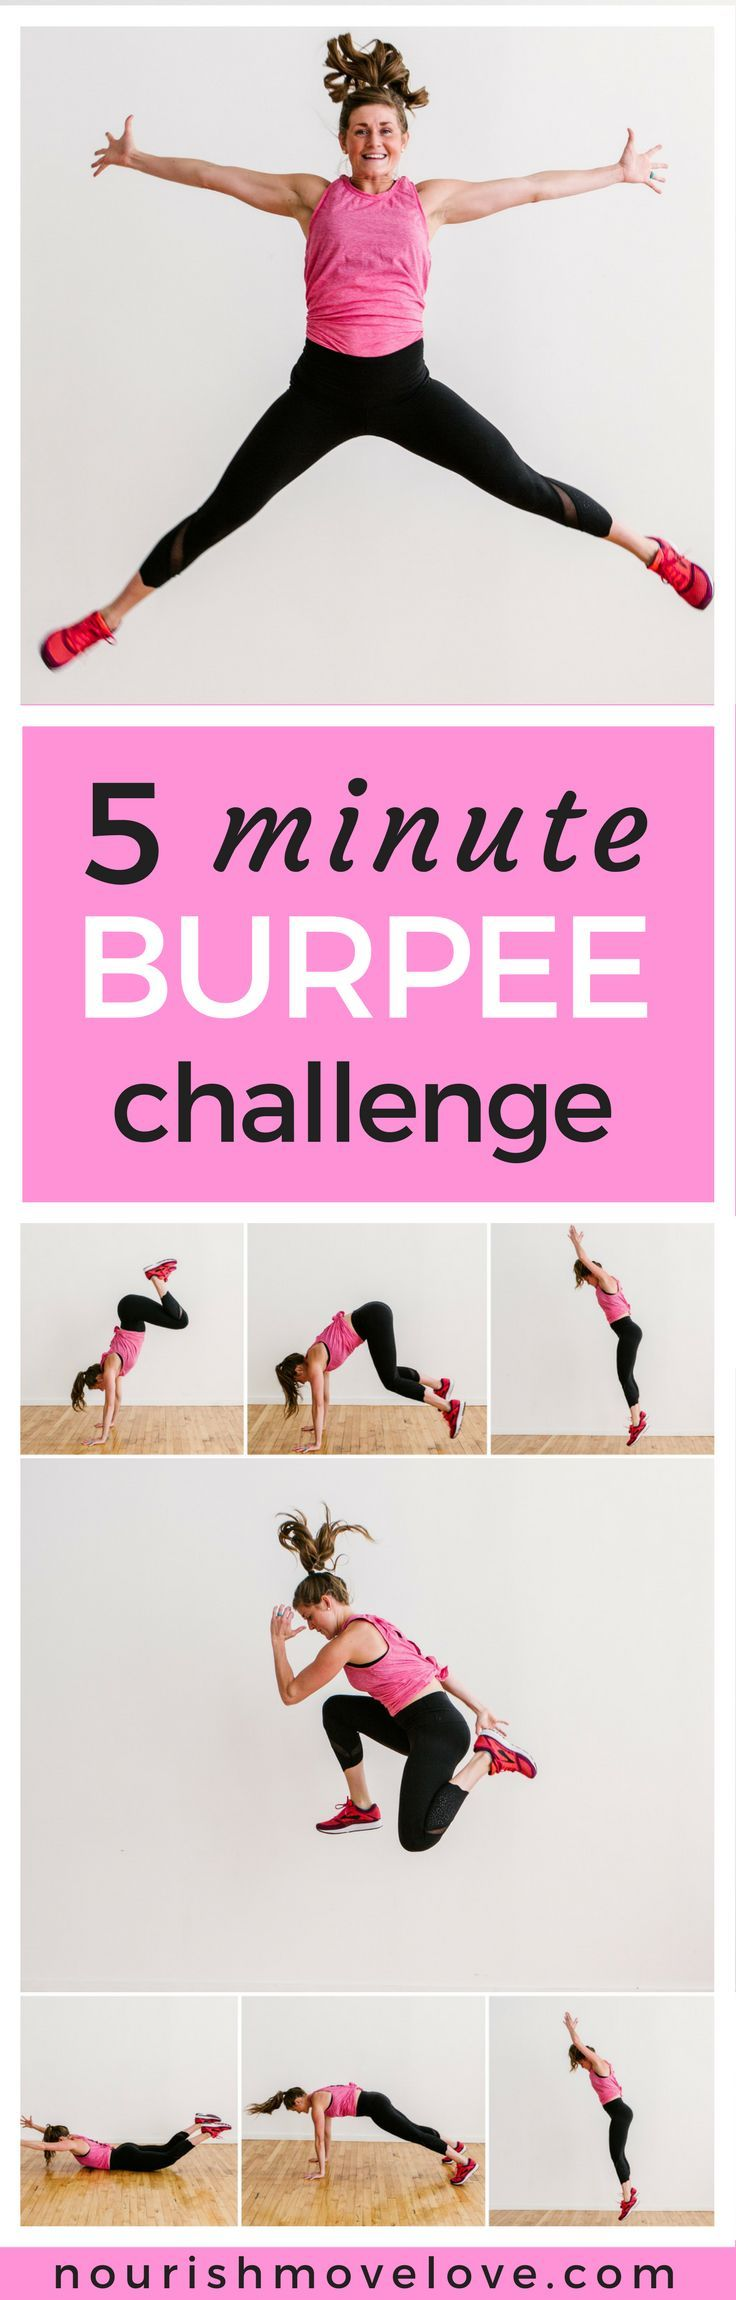 5 Minute Burpee Challenge | burpee I burpee challenge I burpees how to do I workouts for women I workout challenge I Nourish Move Love II #burpees #workoutchallenge #workouts